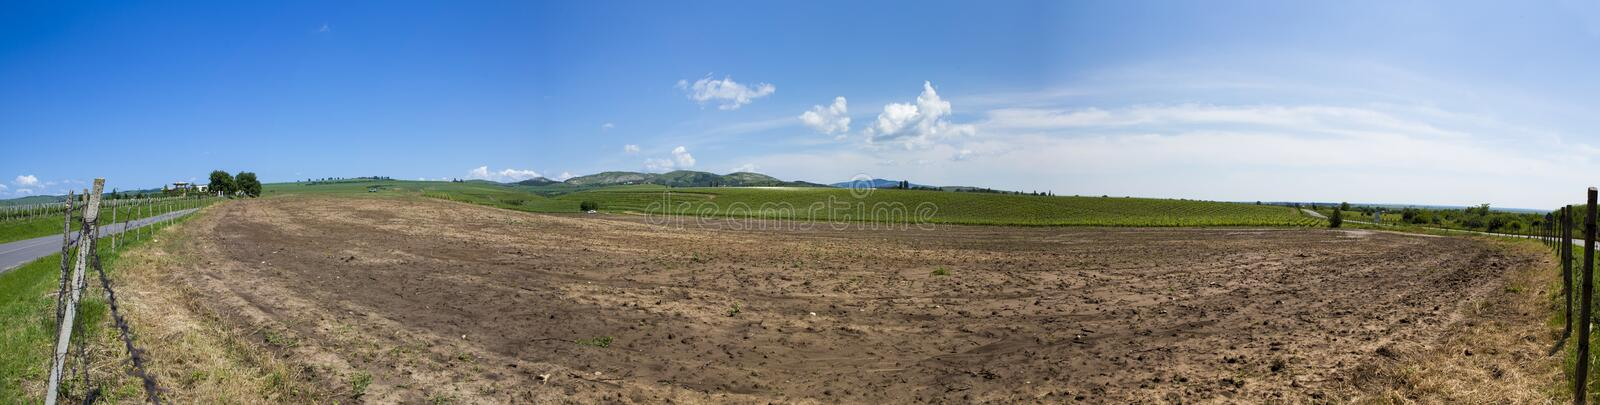 Panorama of a fresh ploughing agriculture field. And a graveyard in the background from Romania stock photo